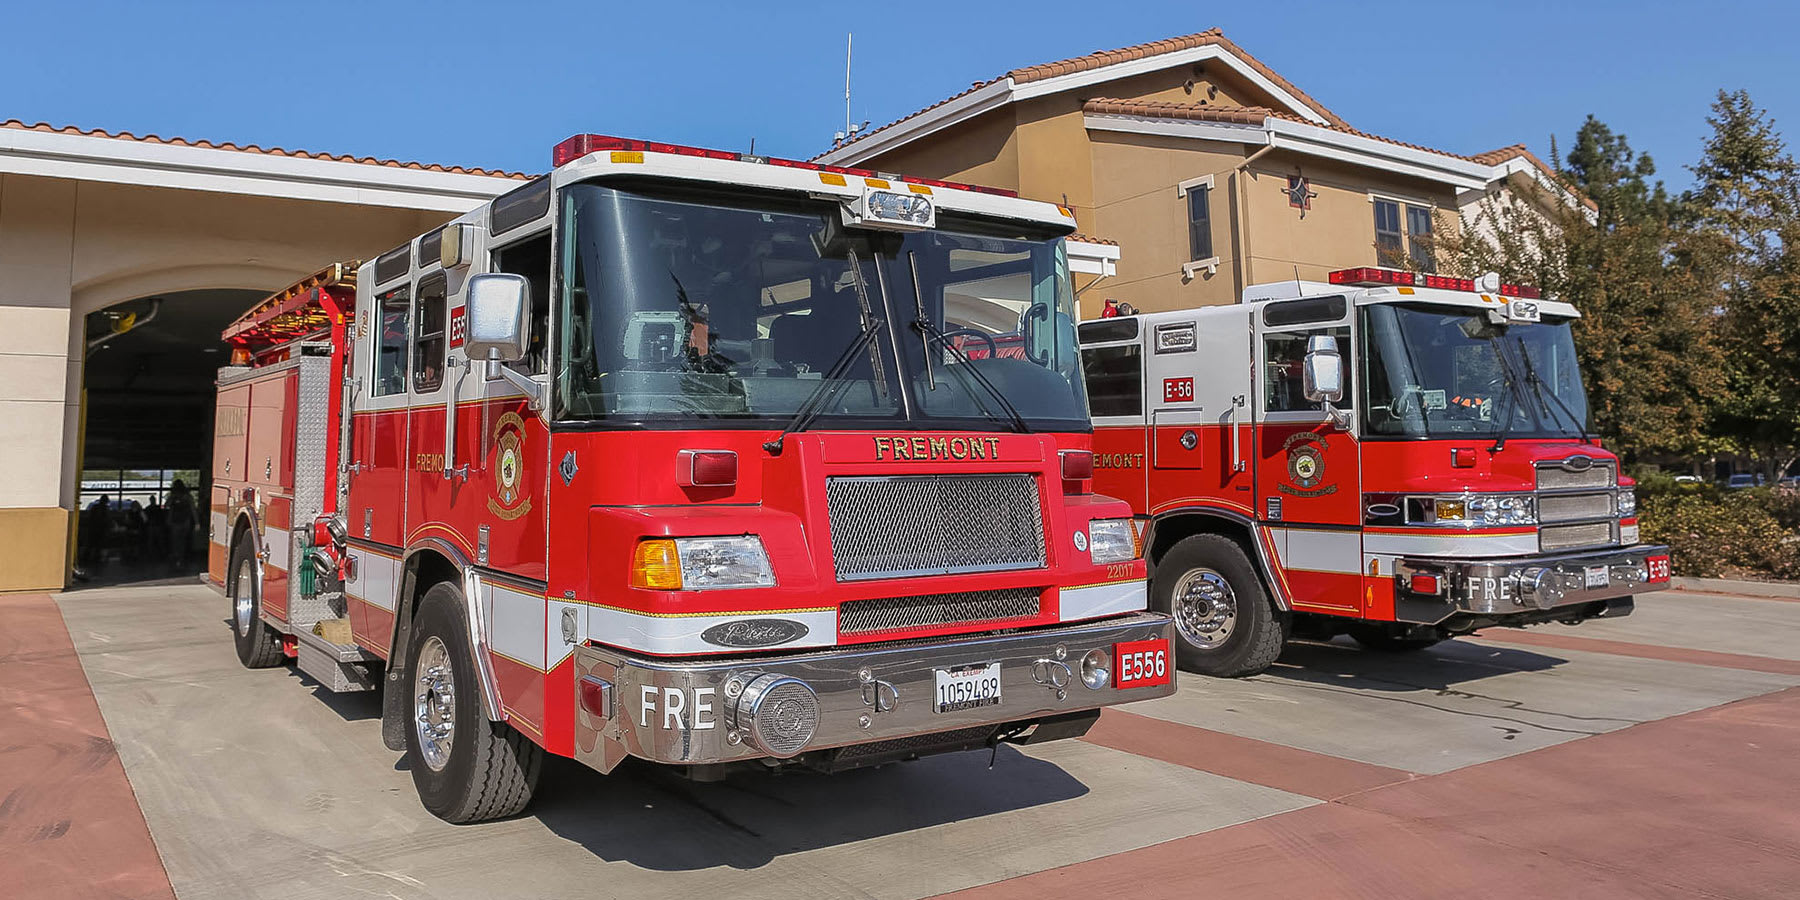 Freemont Fire Station, showing the firetrucks parked in front.